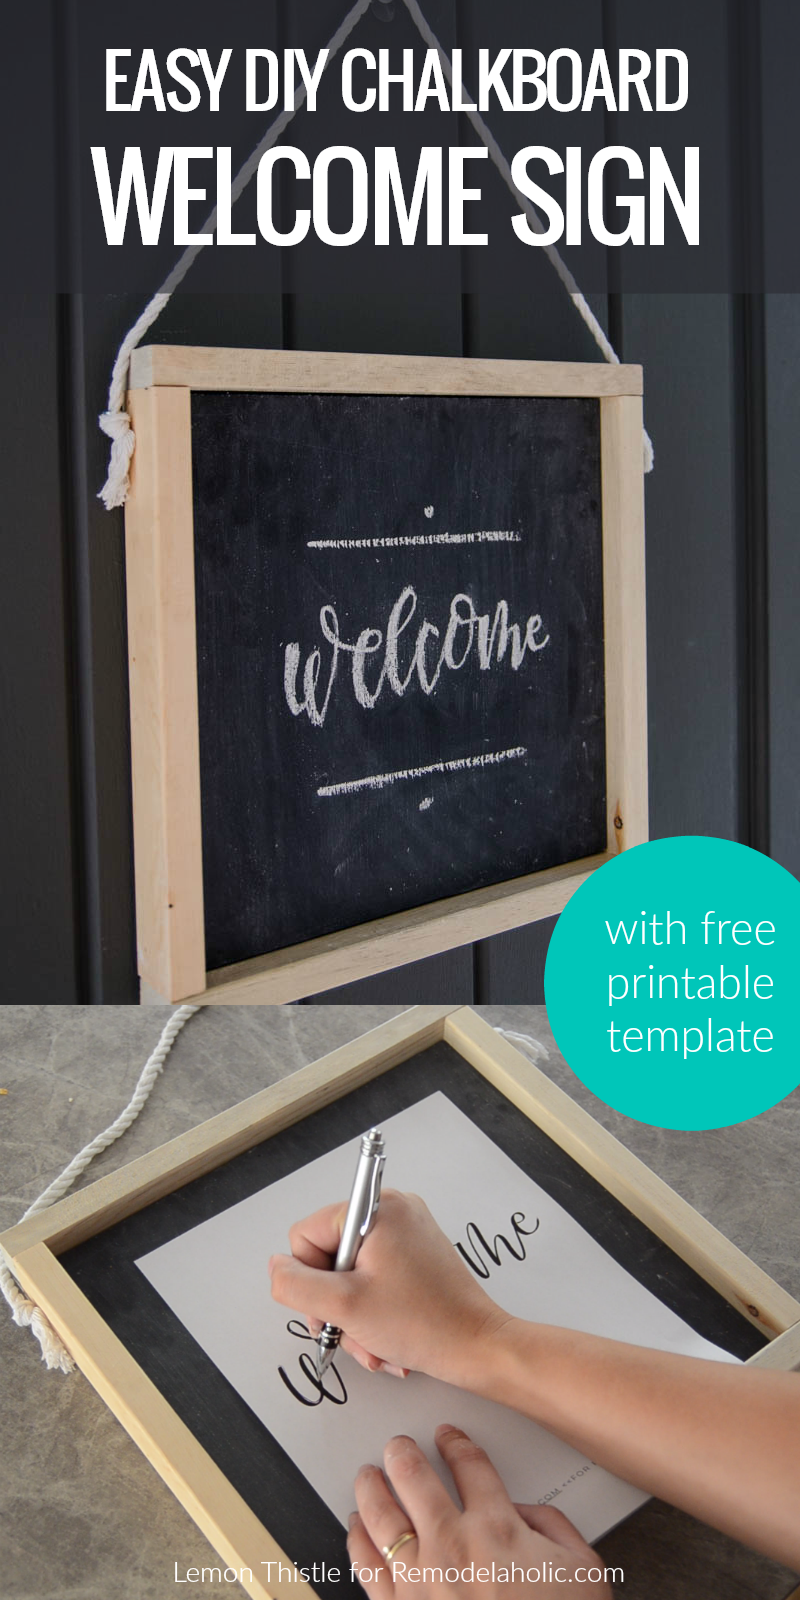 Make This Easy And Inexpensive DIY Wooden Chalkboard Welcome Sign For Your Front Door Use